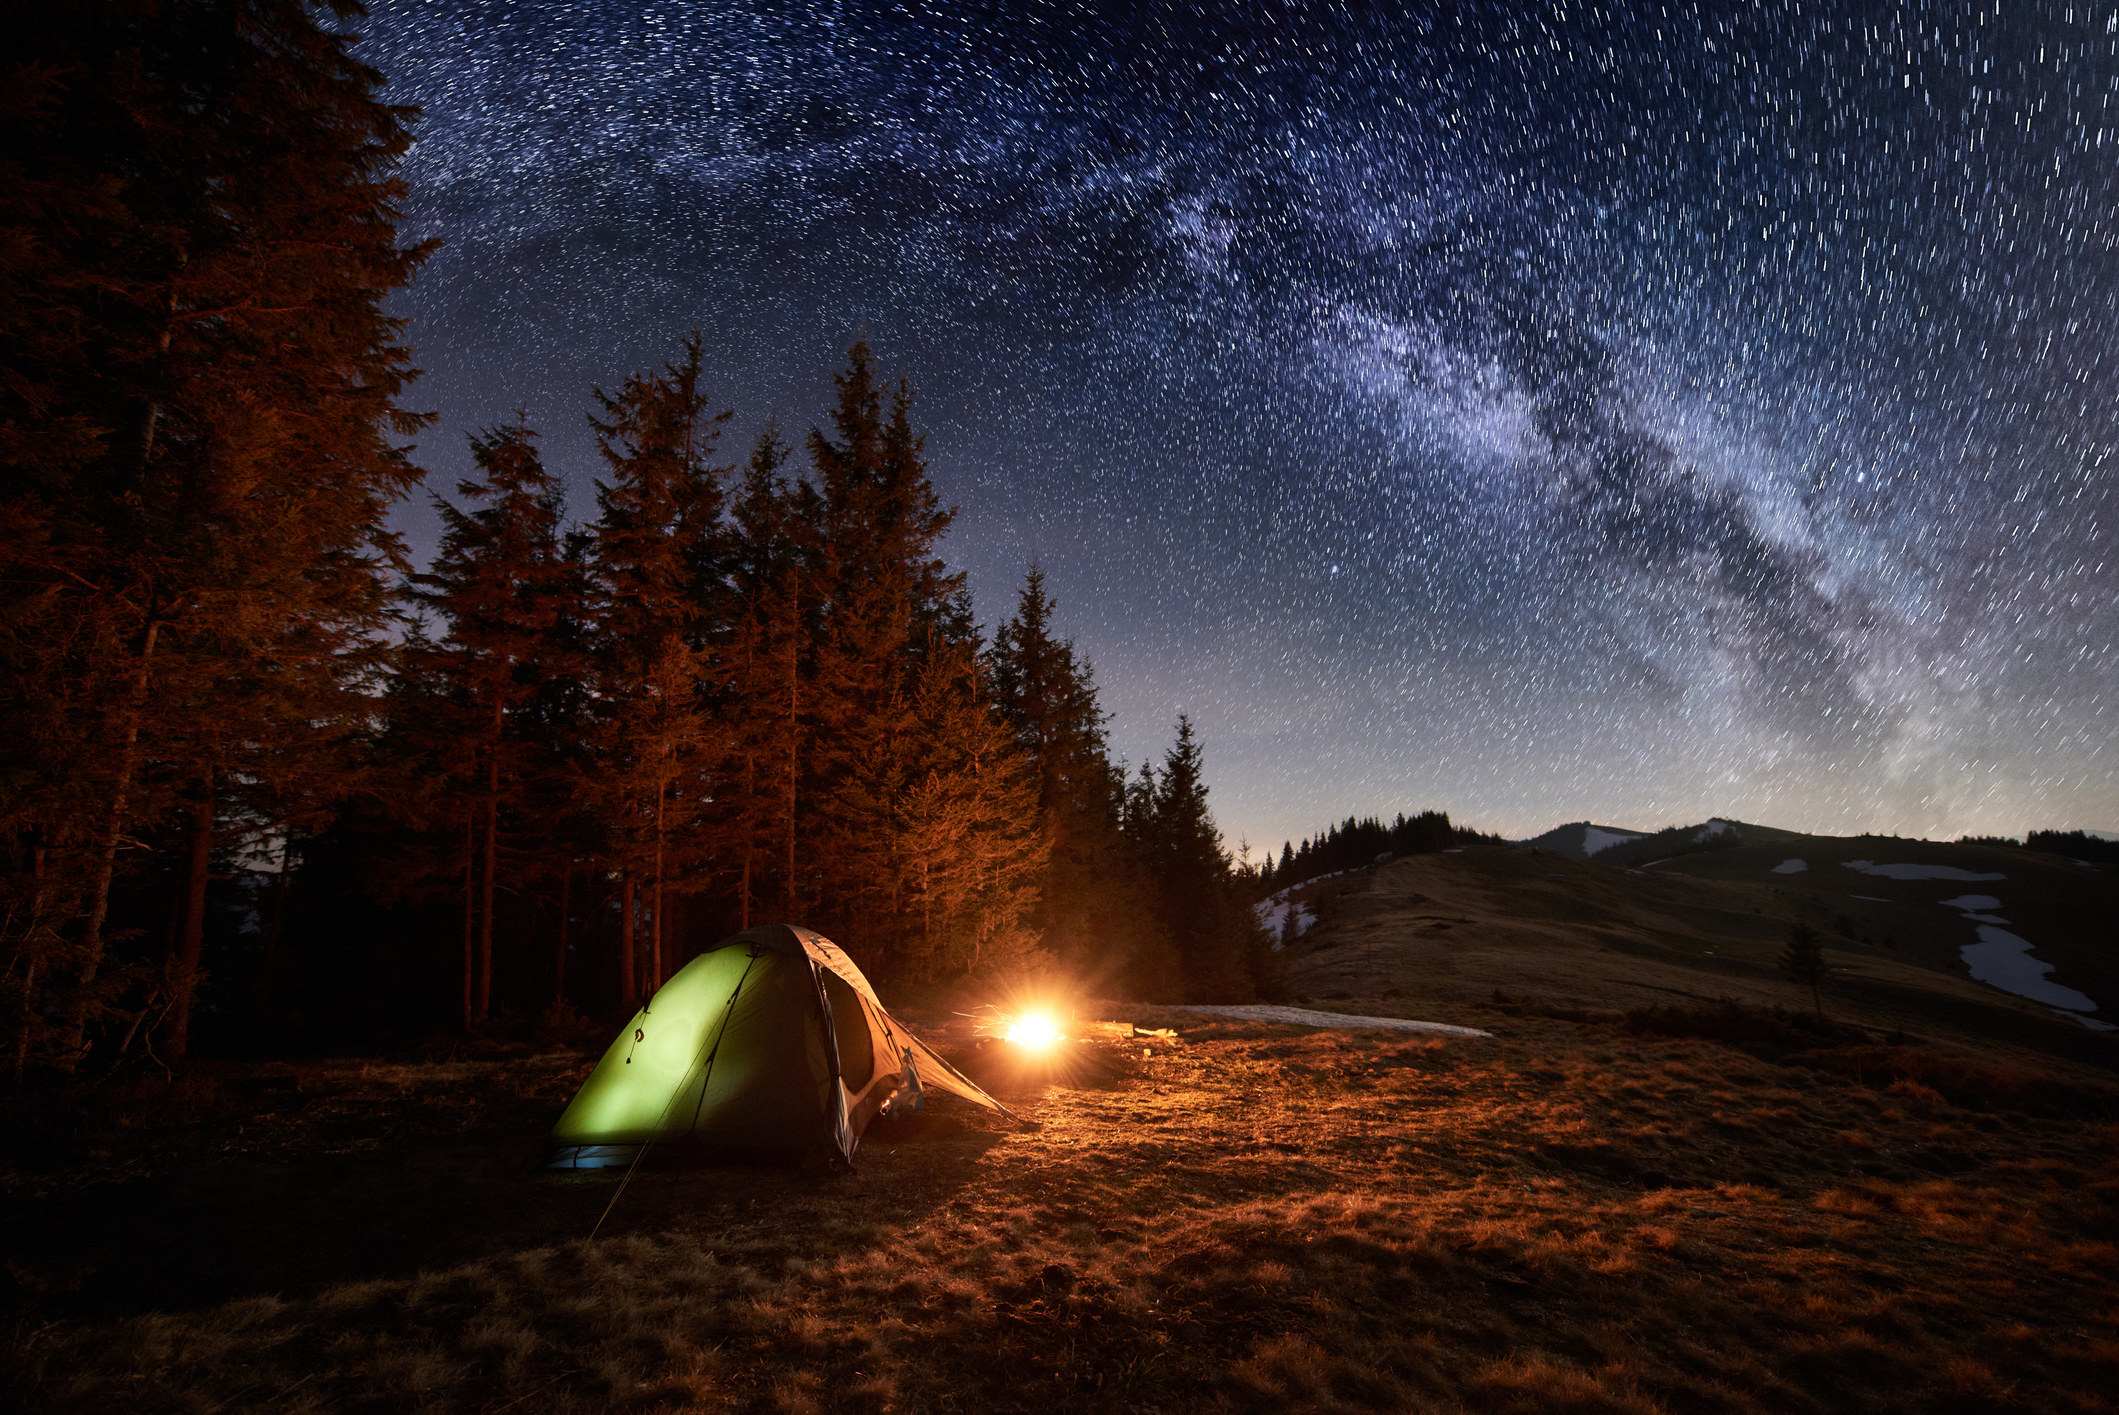 Illuminated tent under a starry night sky